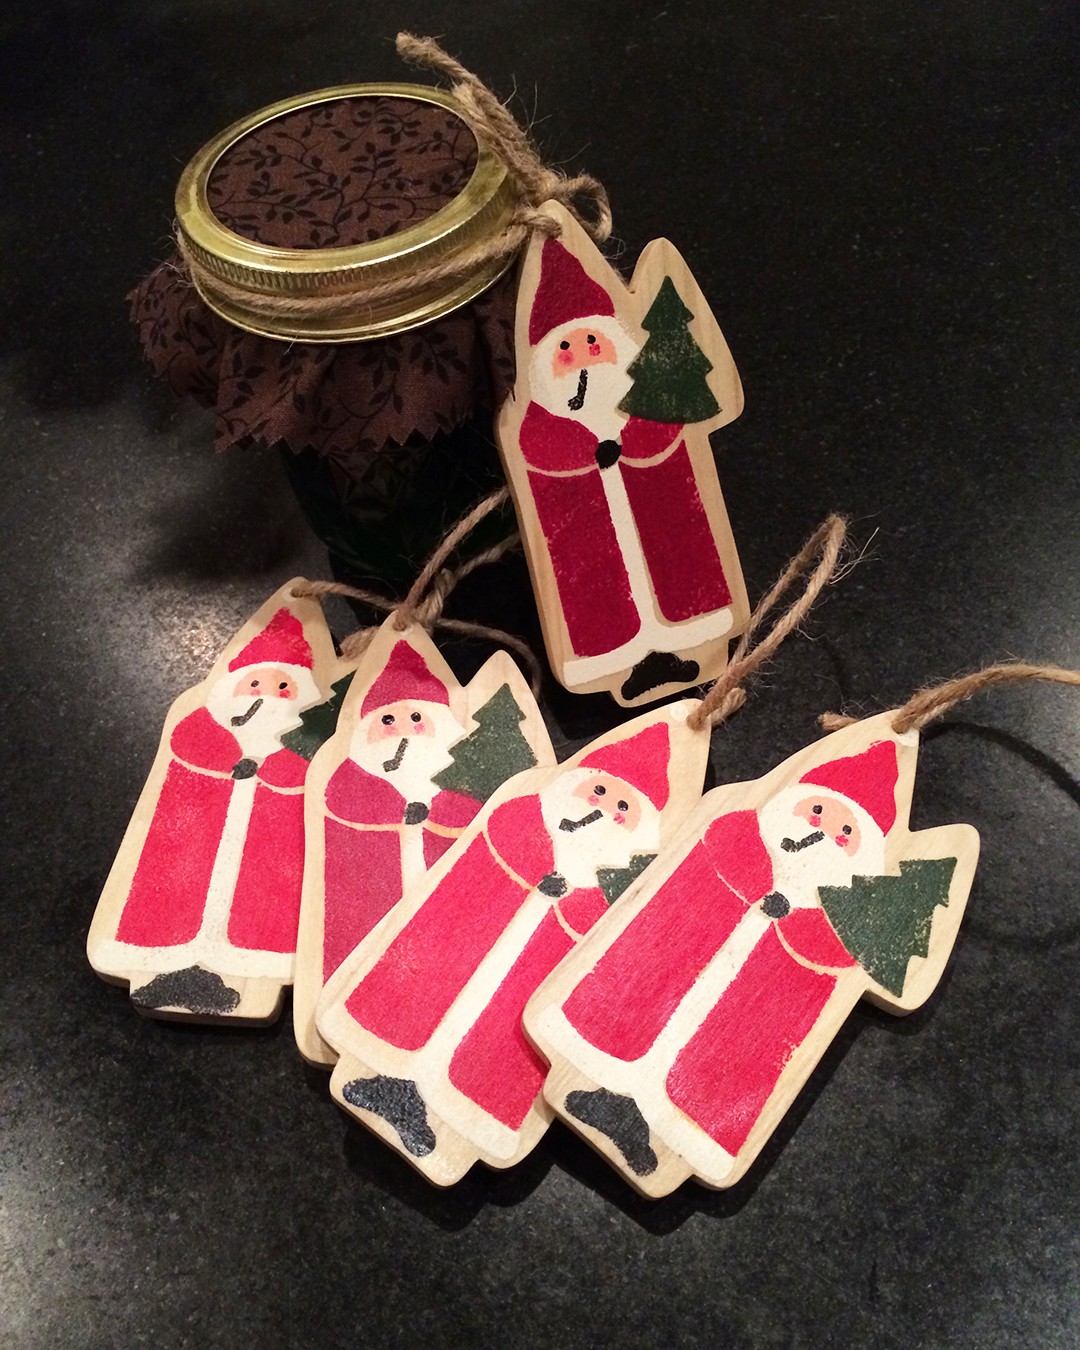 stenciled santa ornaments